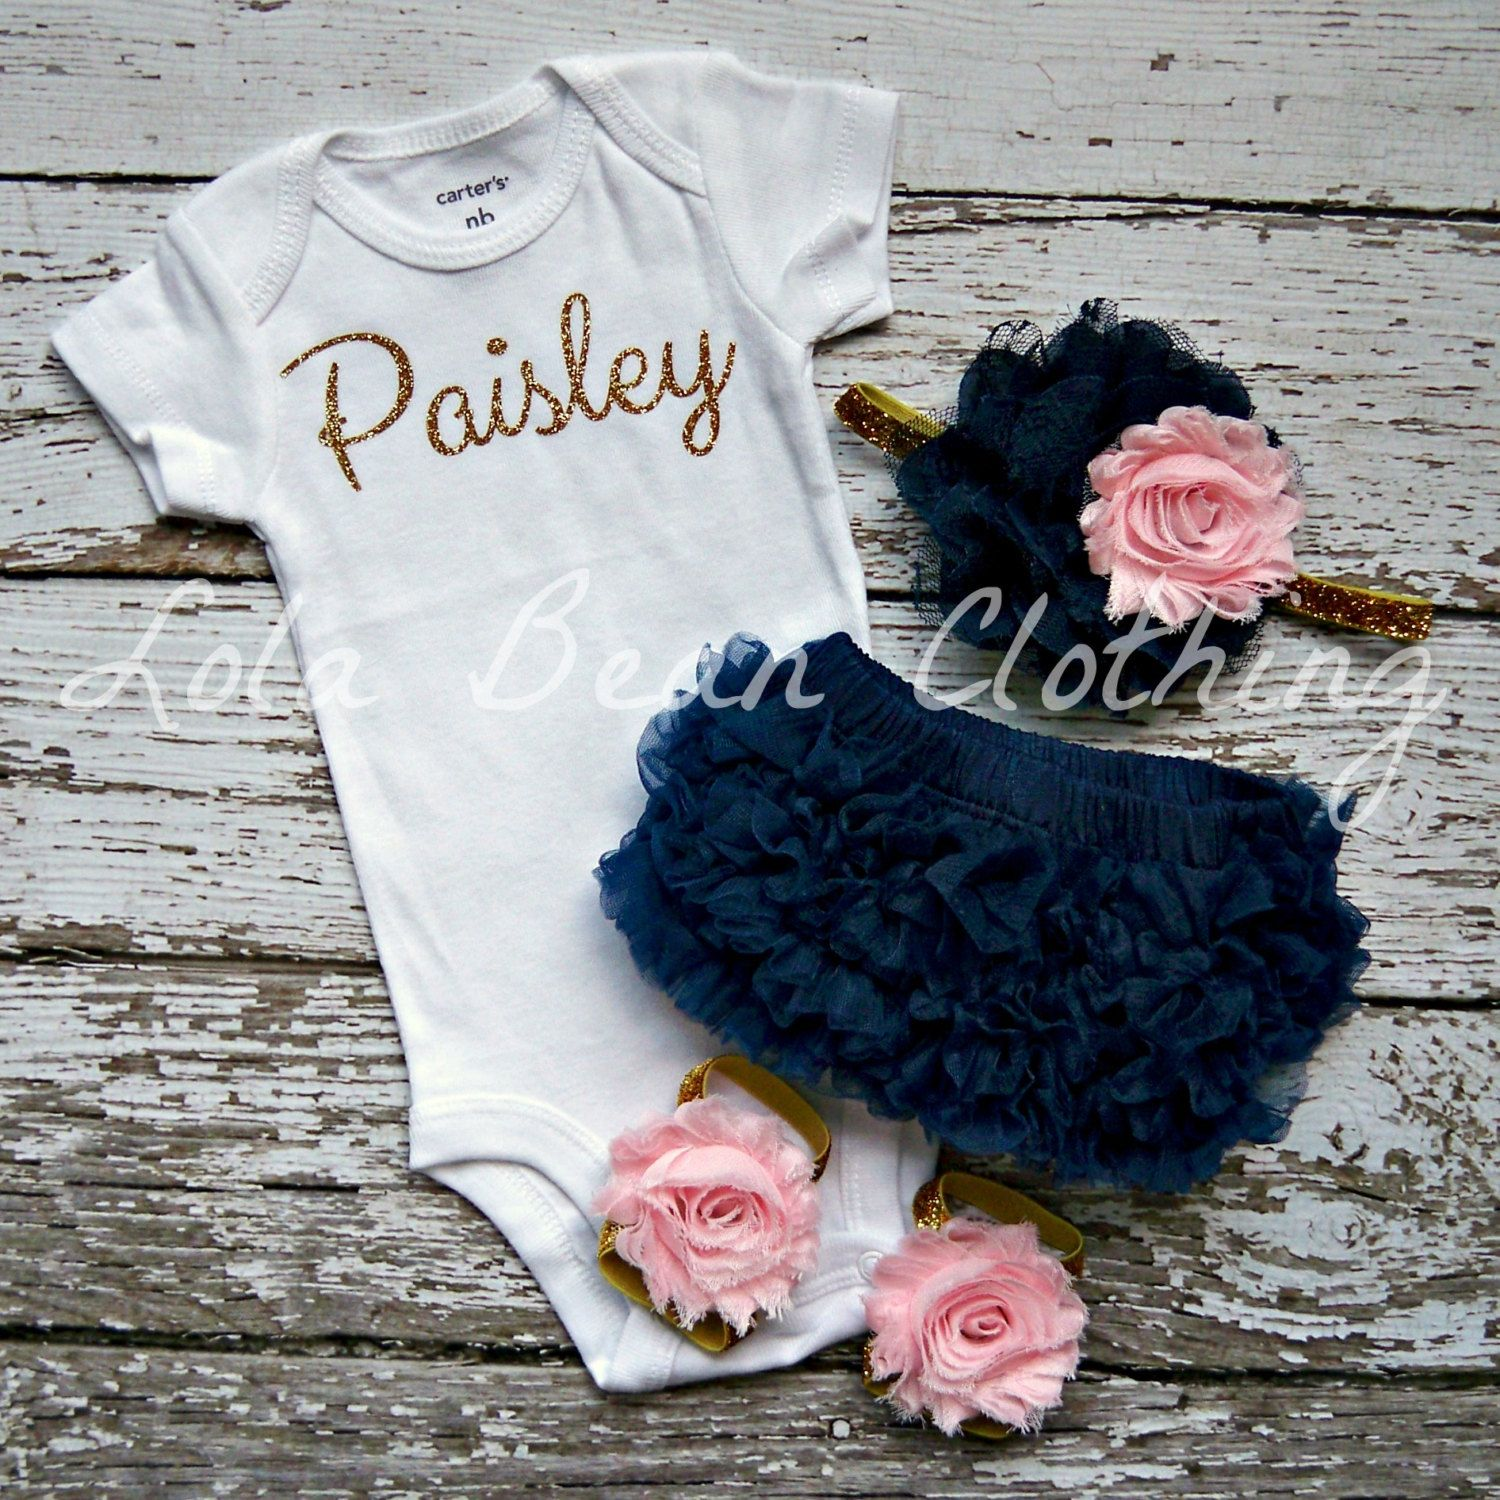 baby cute photos photography newborn estelle blog days gold photographer coast